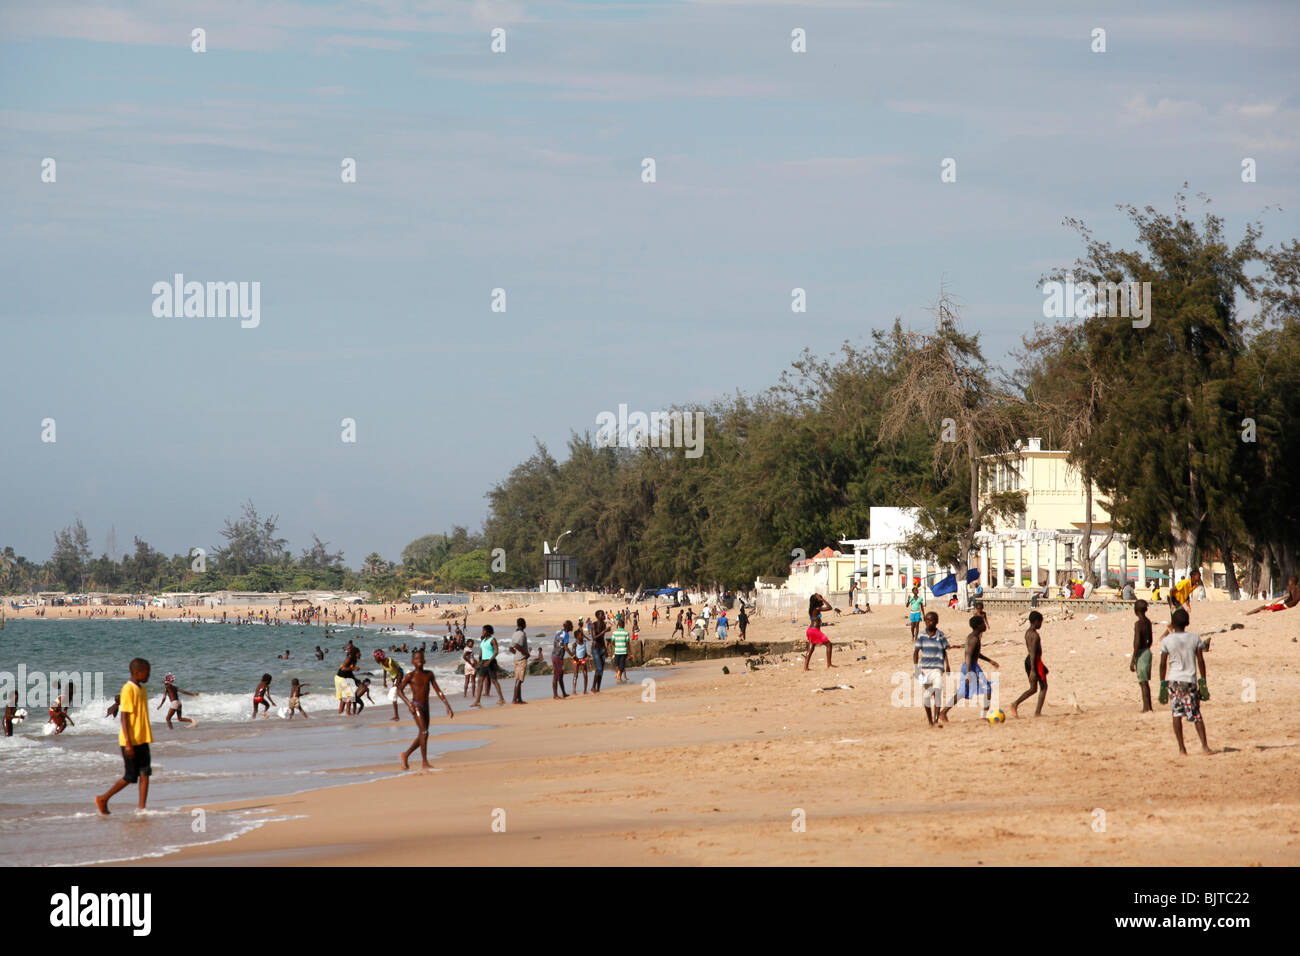 People Play And Walk Along The Beach Praia Morena Benguela